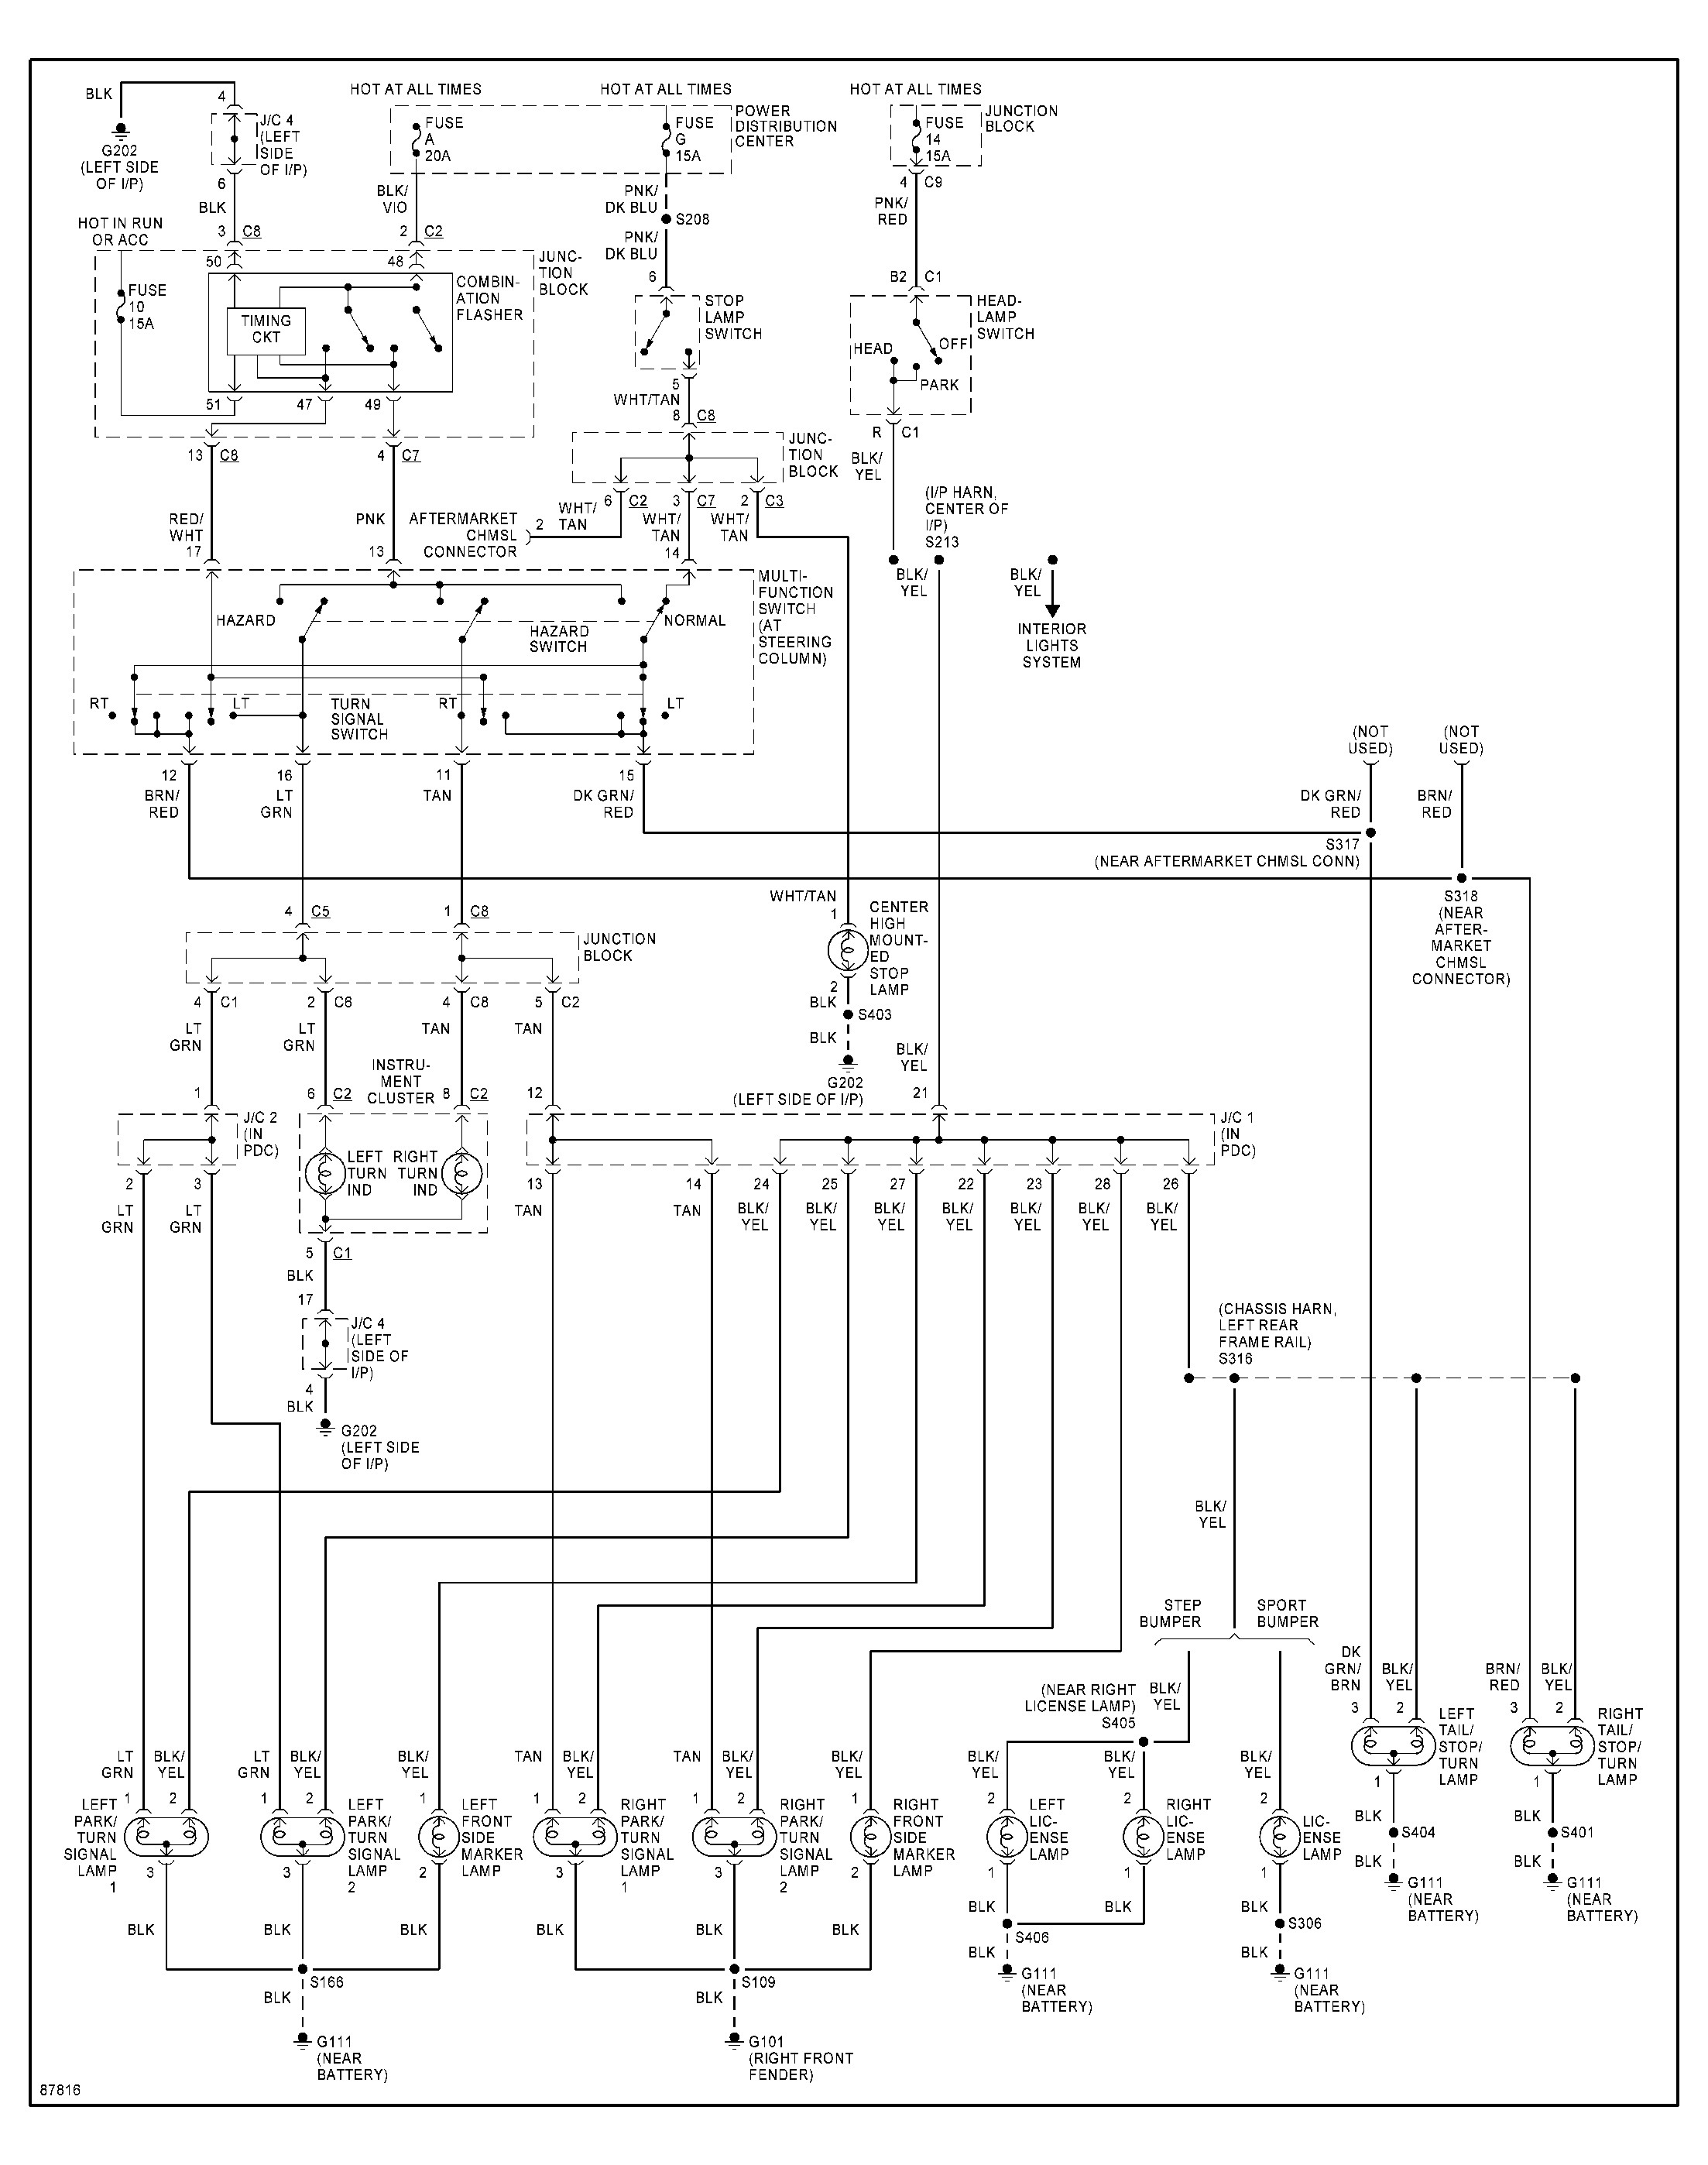 2001 dodge ram truck wiring diagram 2004 dodge ram truck wiring diagram